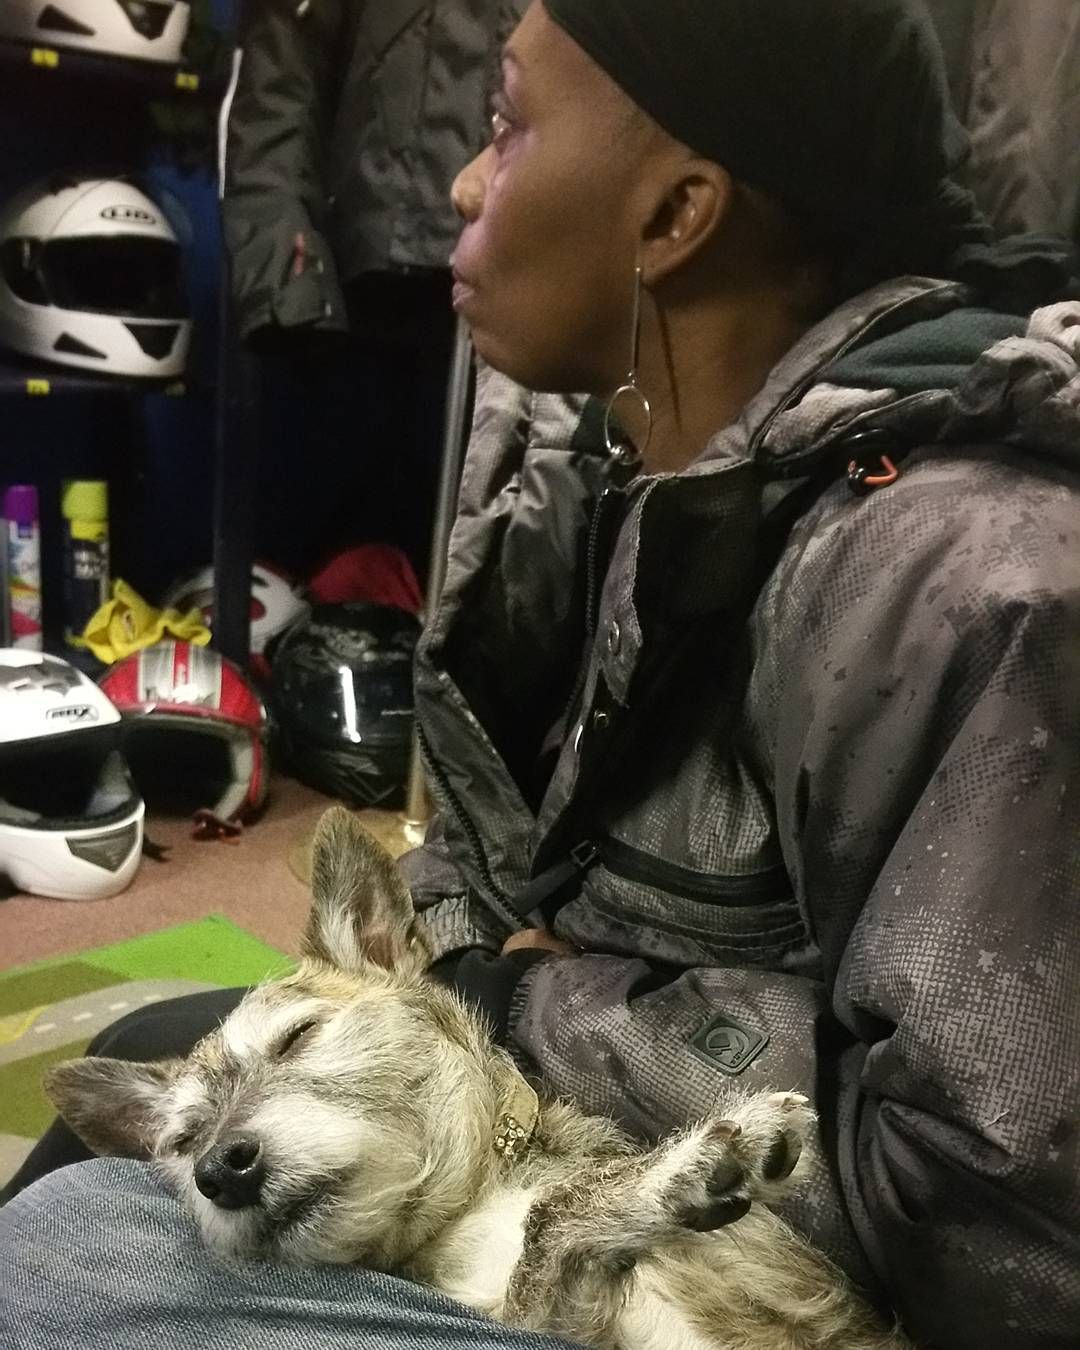 #mashtherebeldogg.... Another tough day #motorcycletraining with #rebeldoggriders  paws for thought.  www.rebeldogg.com